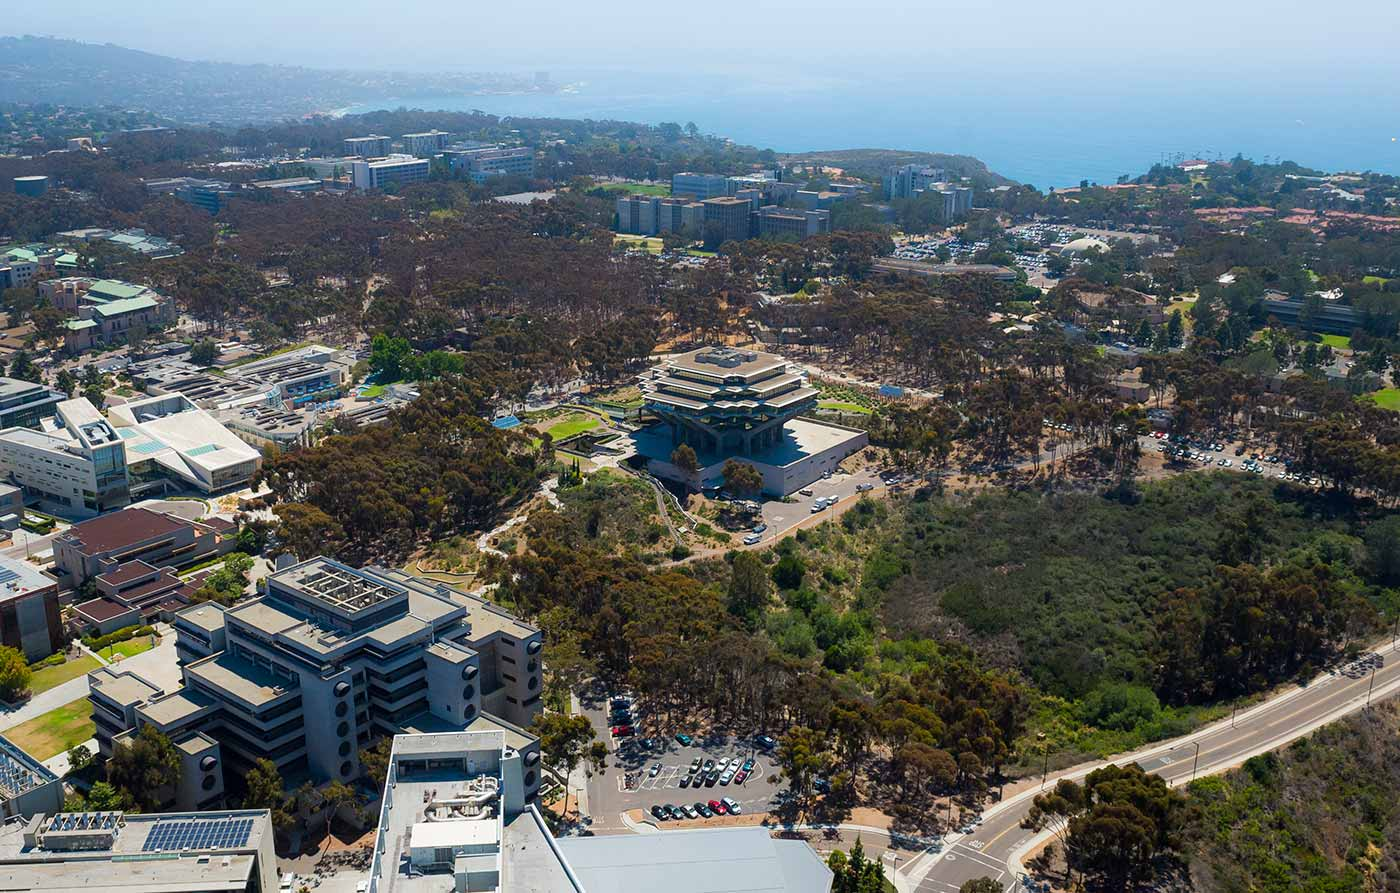 http://ucsdguardian org/2019/01/30/ucsd-breaks-record